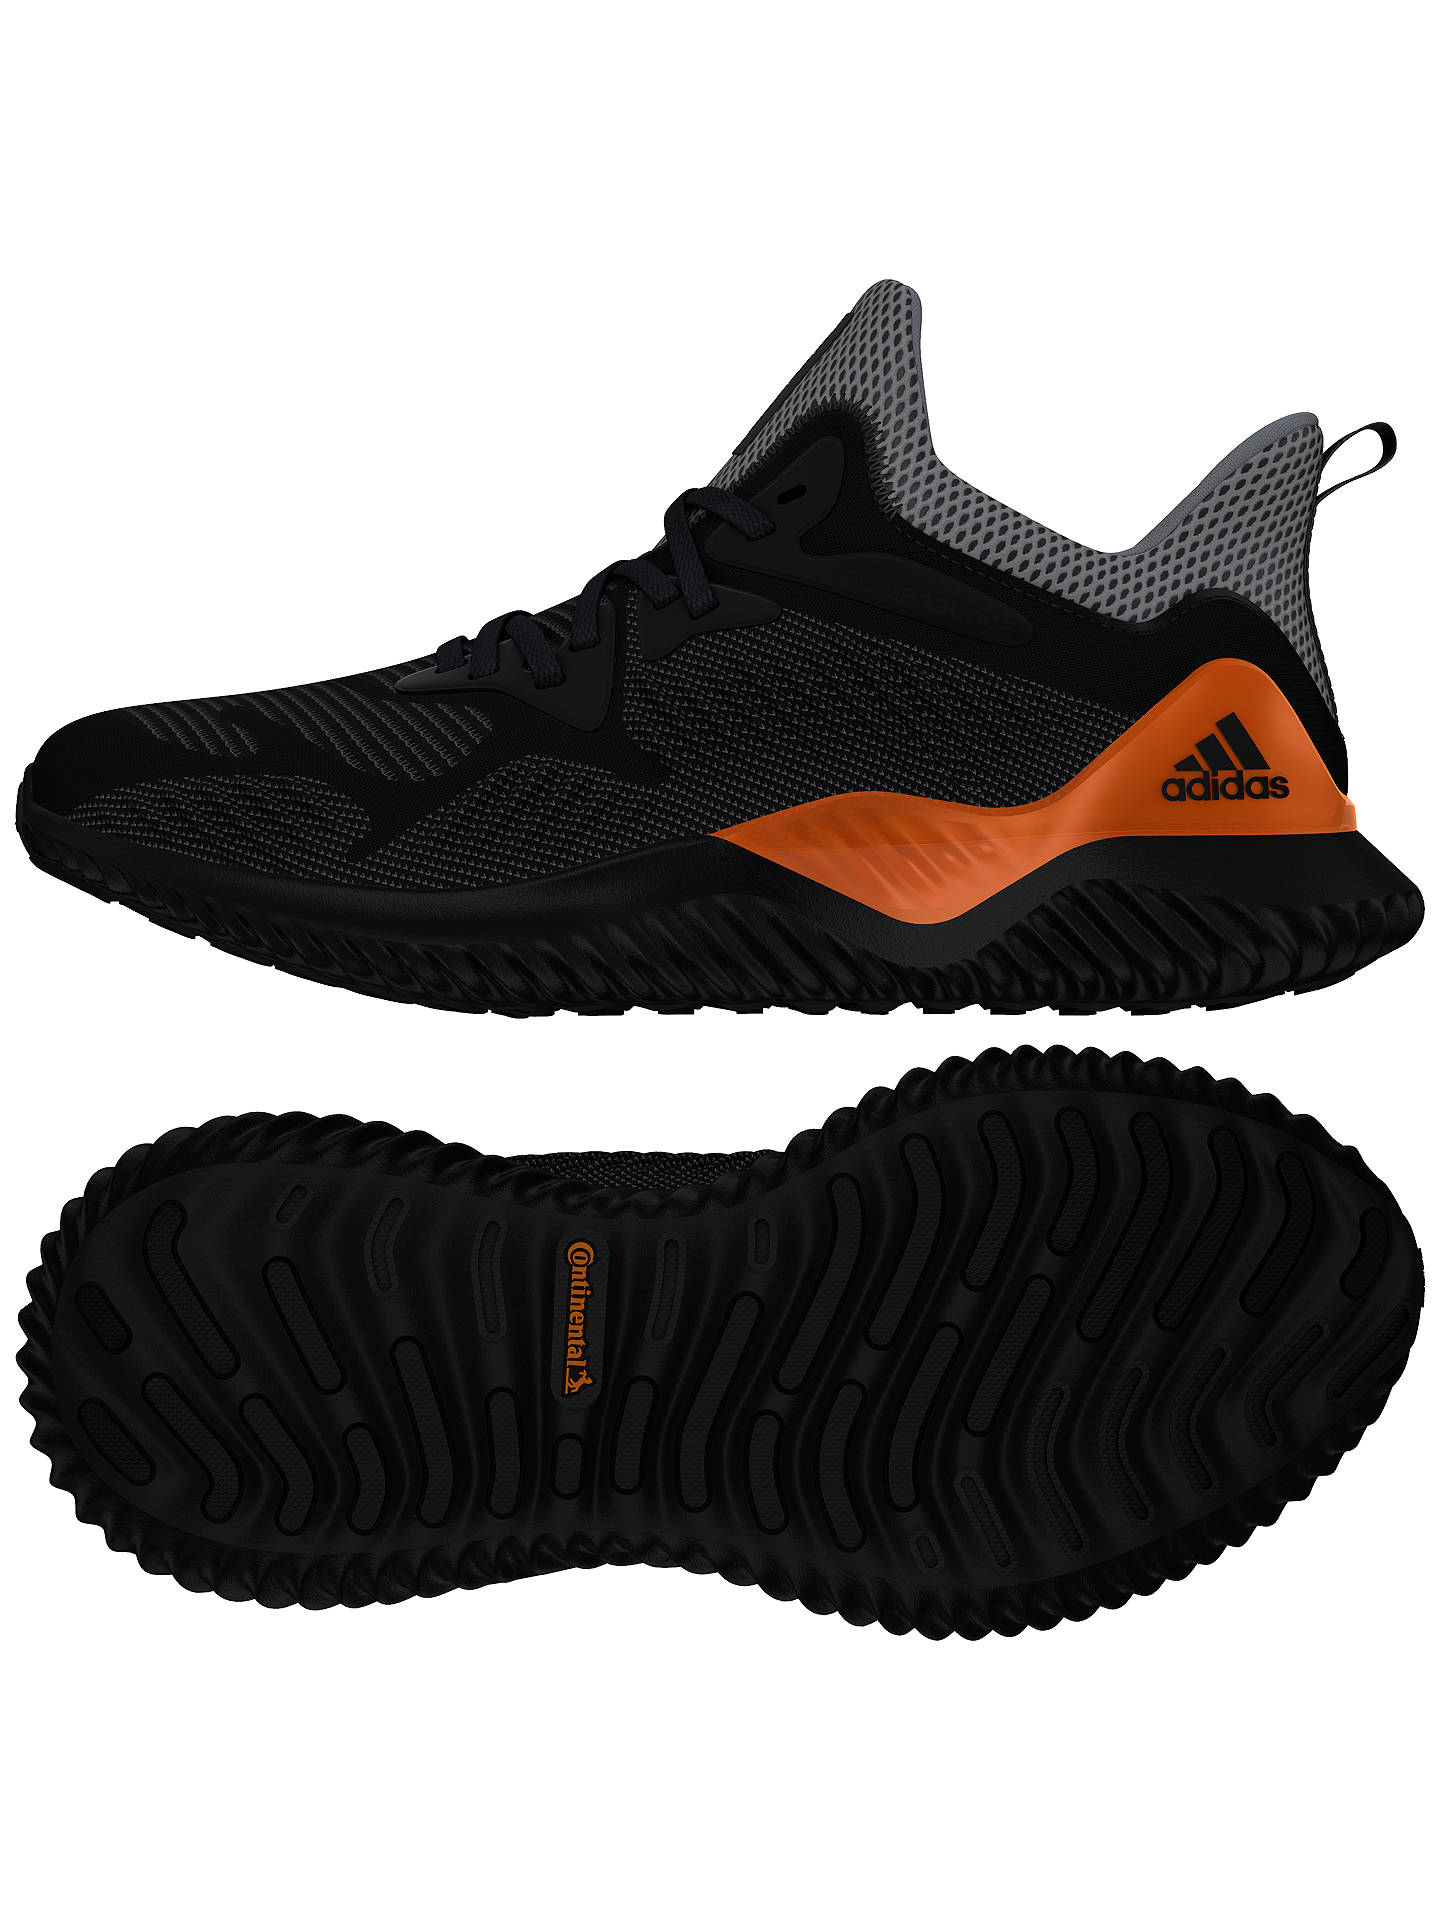 b2300a24c Adidas Alphabounce 2 Men s Running Shoes at John Lewis   Partners